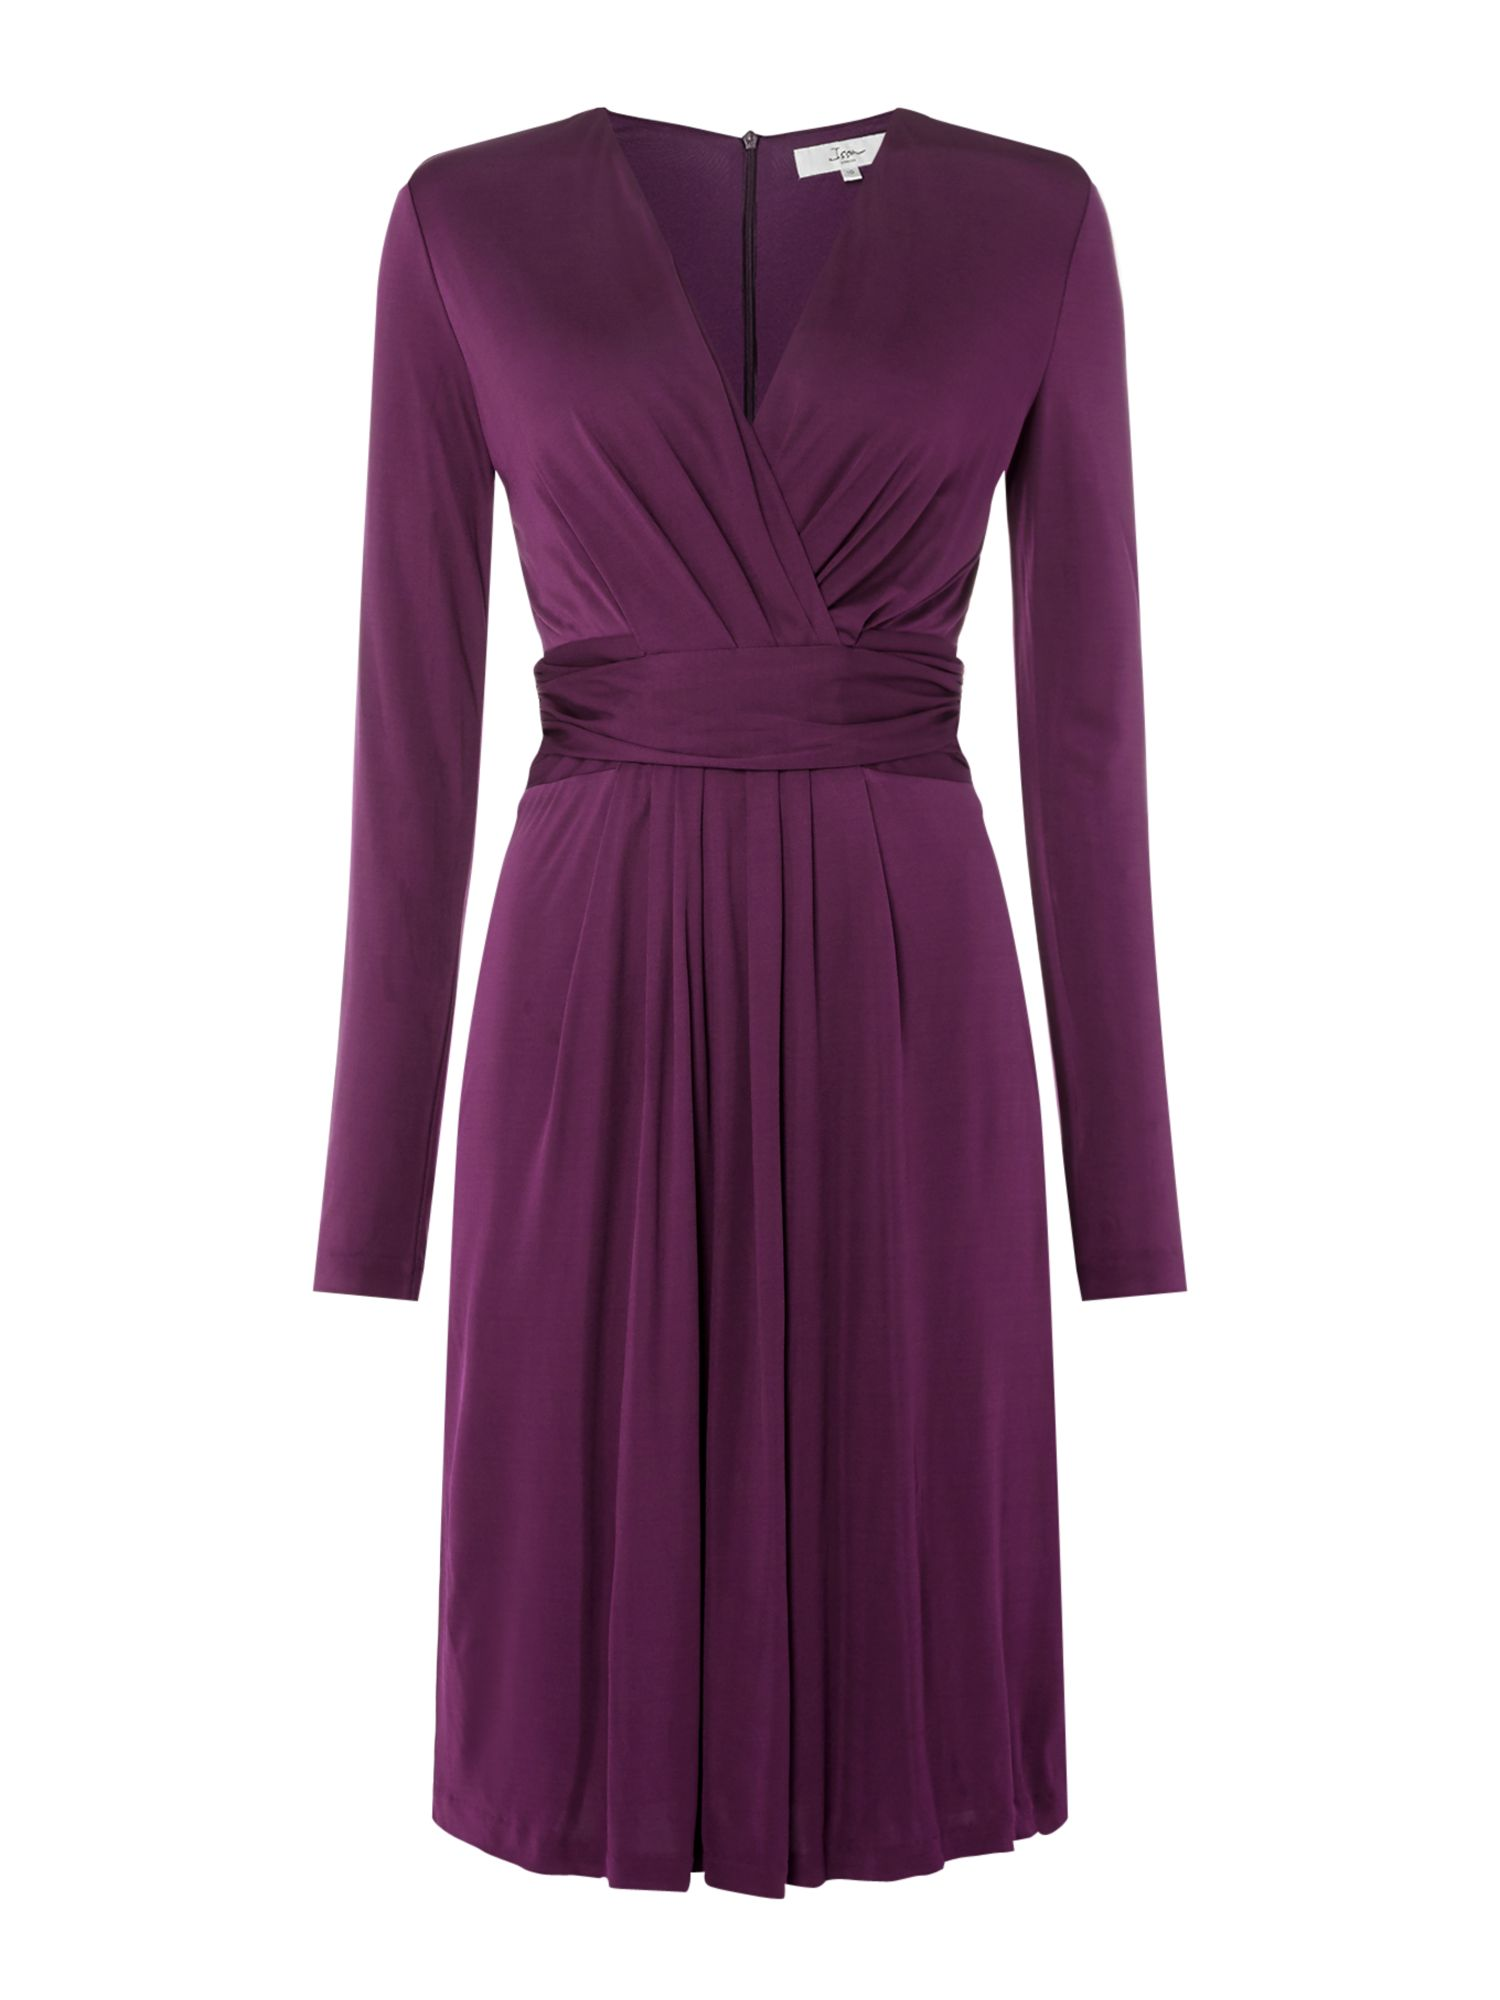 ISSA Darcy Pleat Detail Dress, Purple